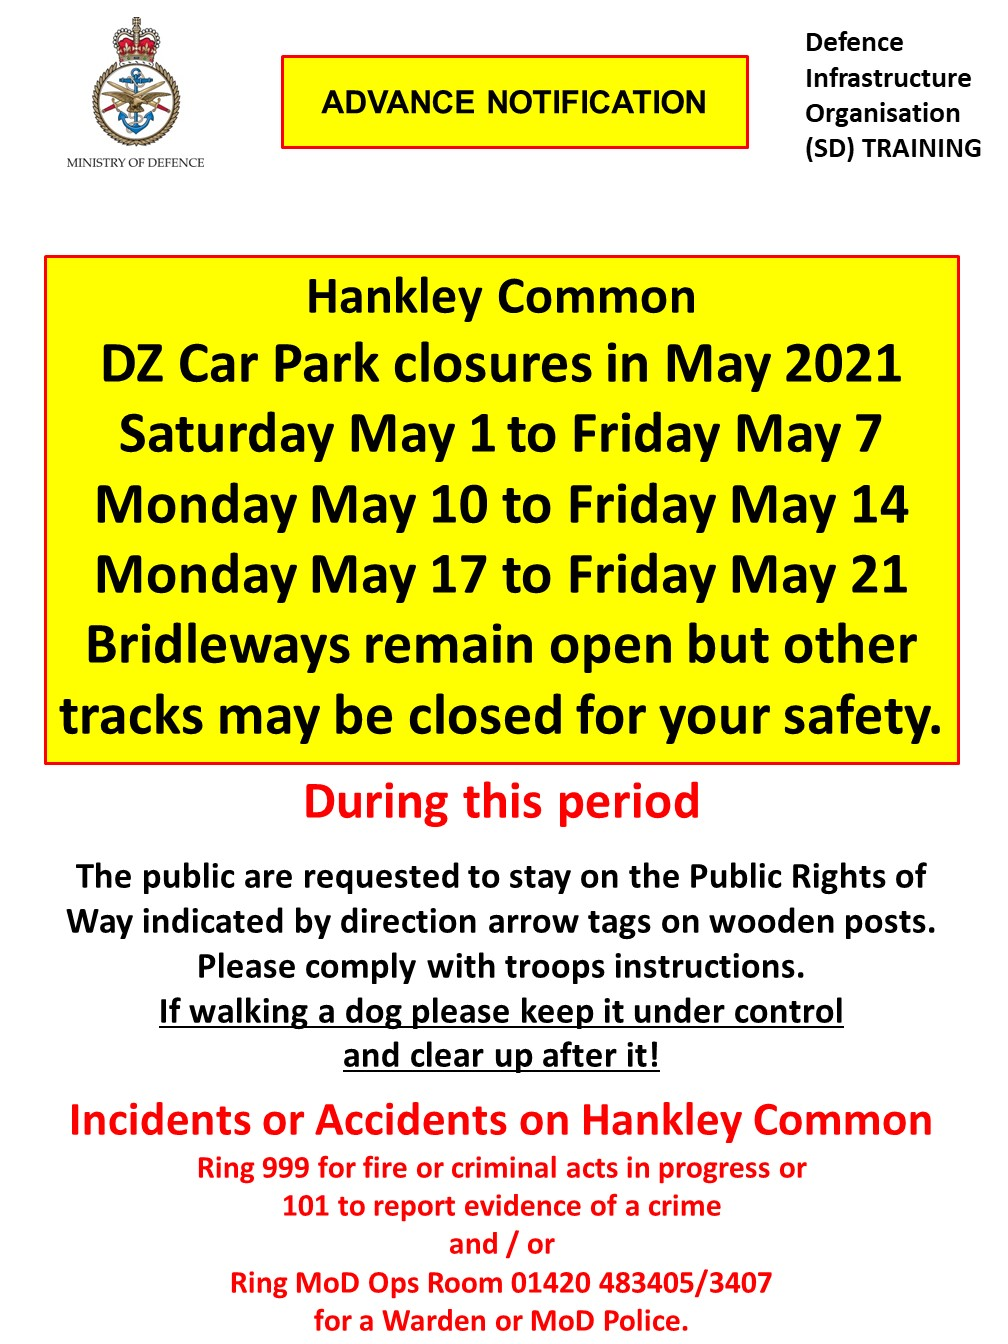 Hankley Common Car Park – May closure dates